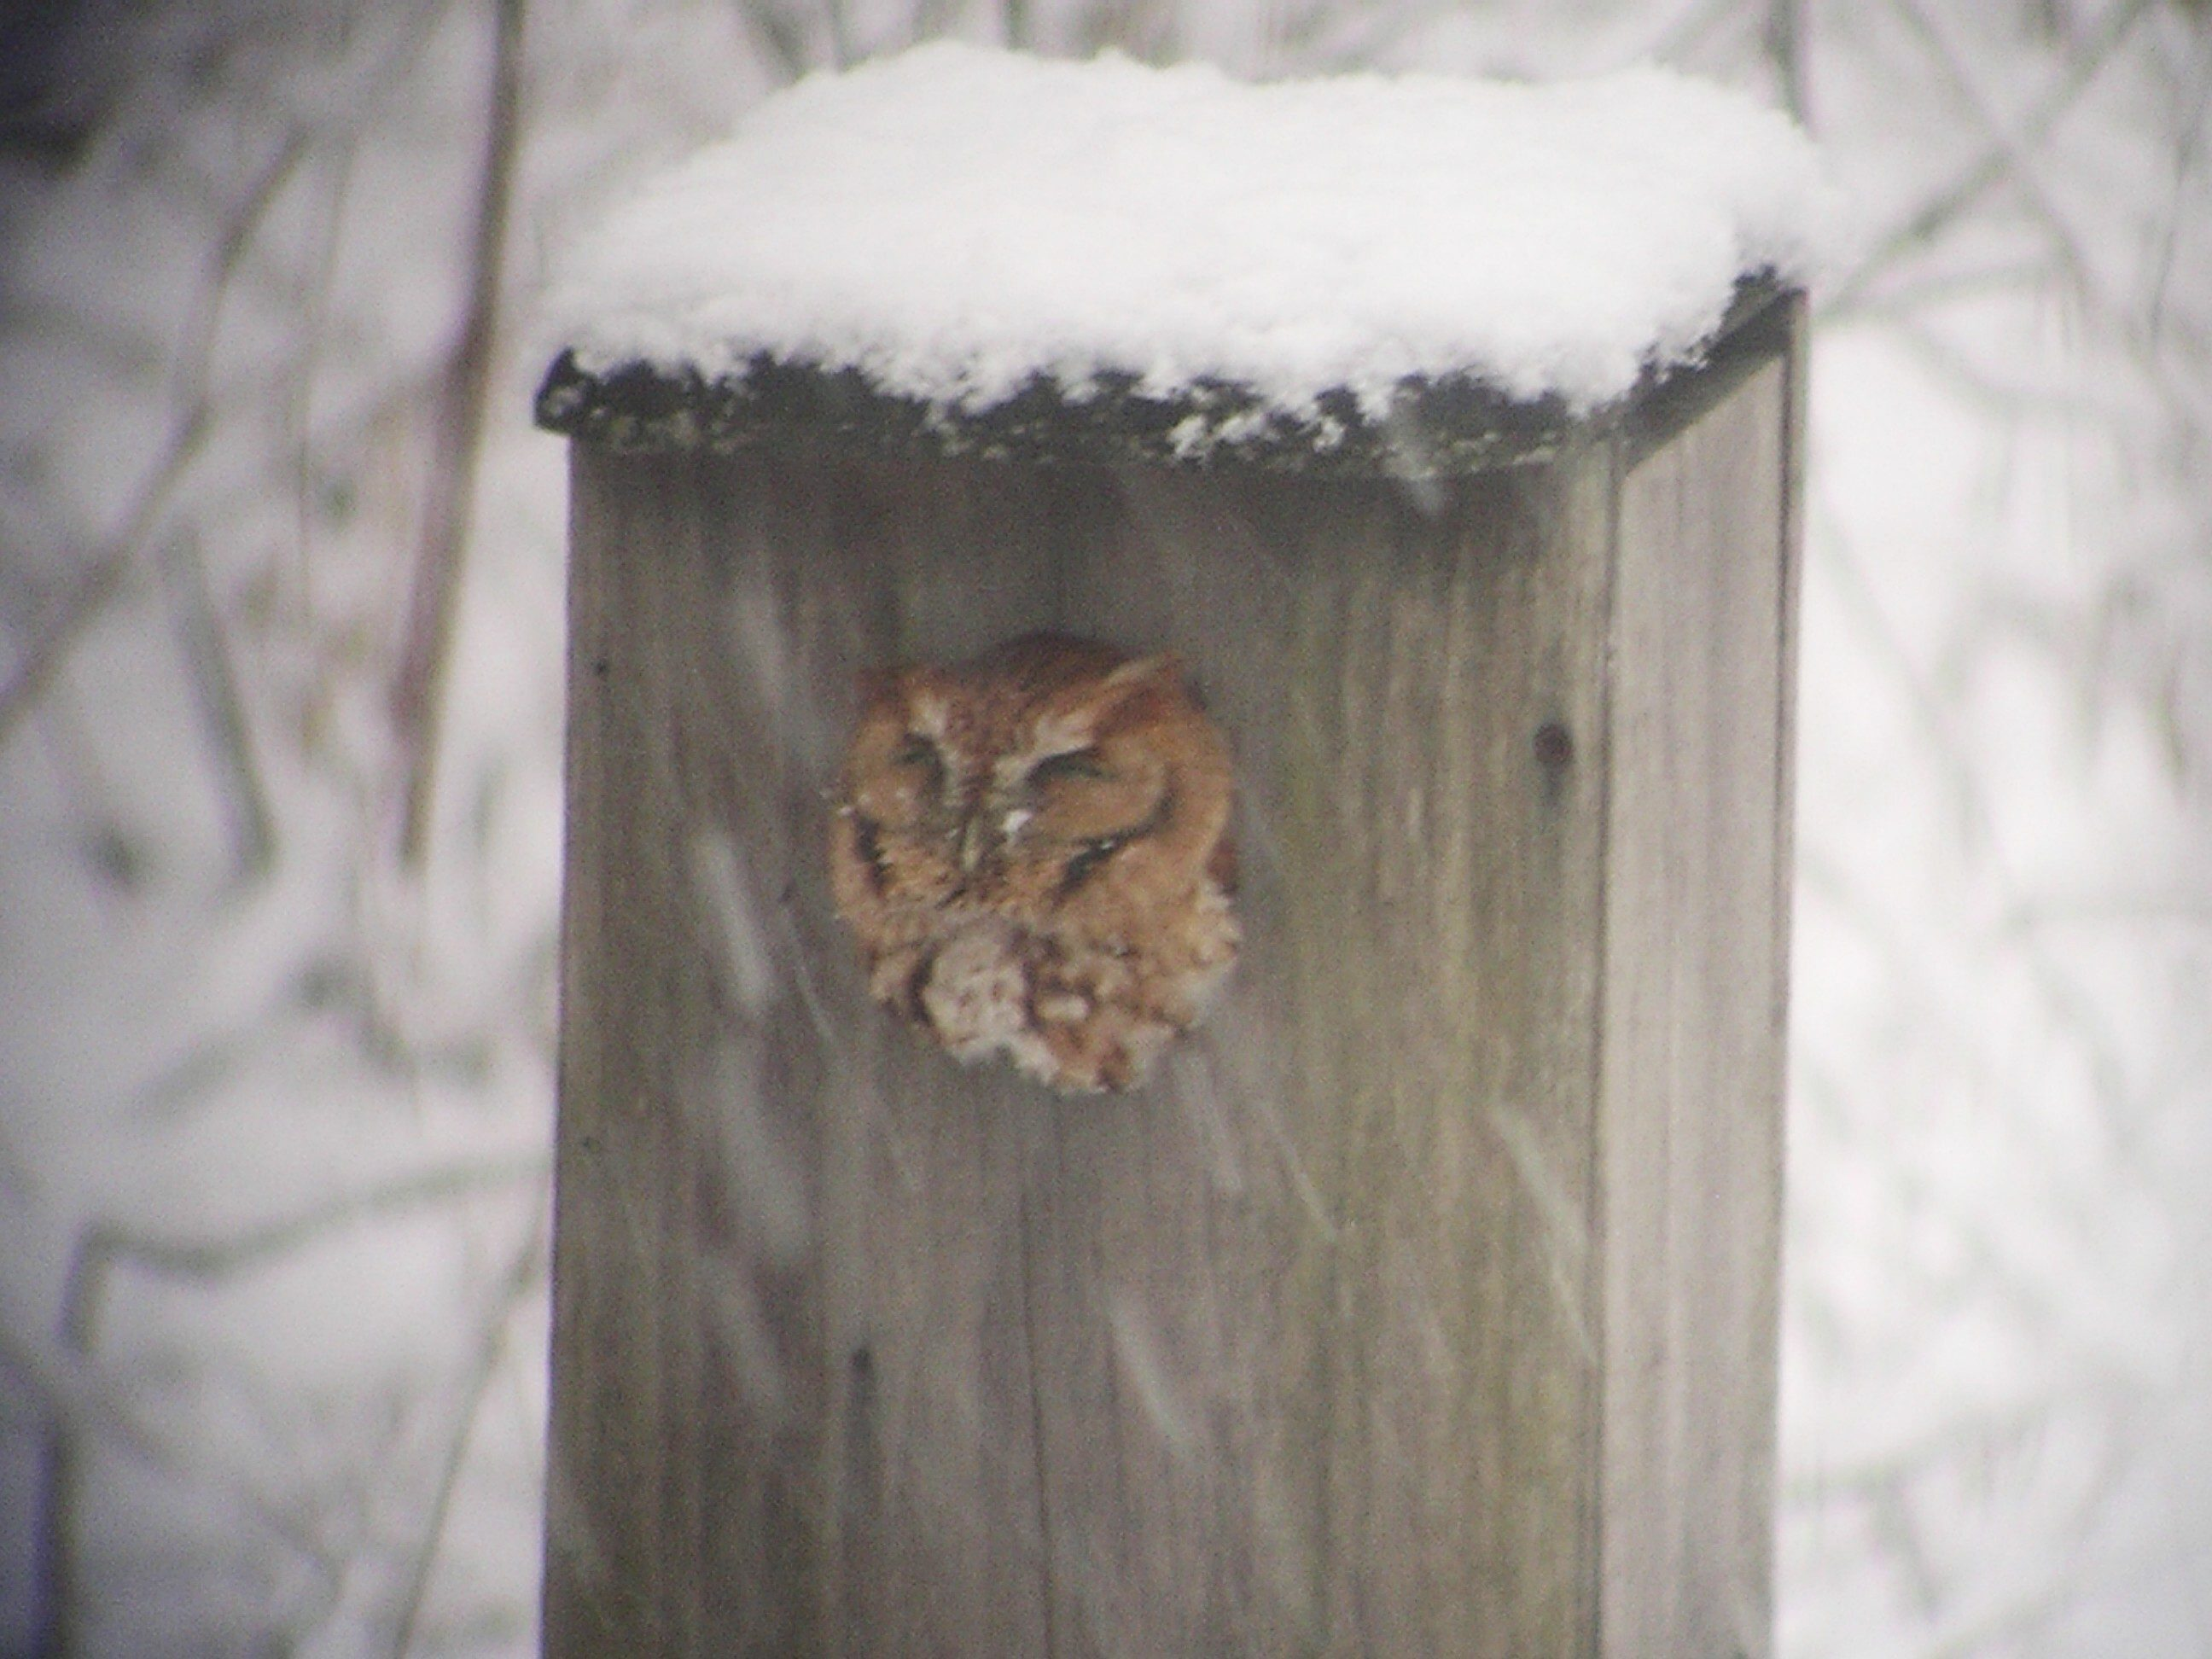 If you install a box in your yard, make sure you can see the entrance hole, as Screech-owls frequently take a look around during the daytime, like this one at my house.  Photo by Joe Sebastiani